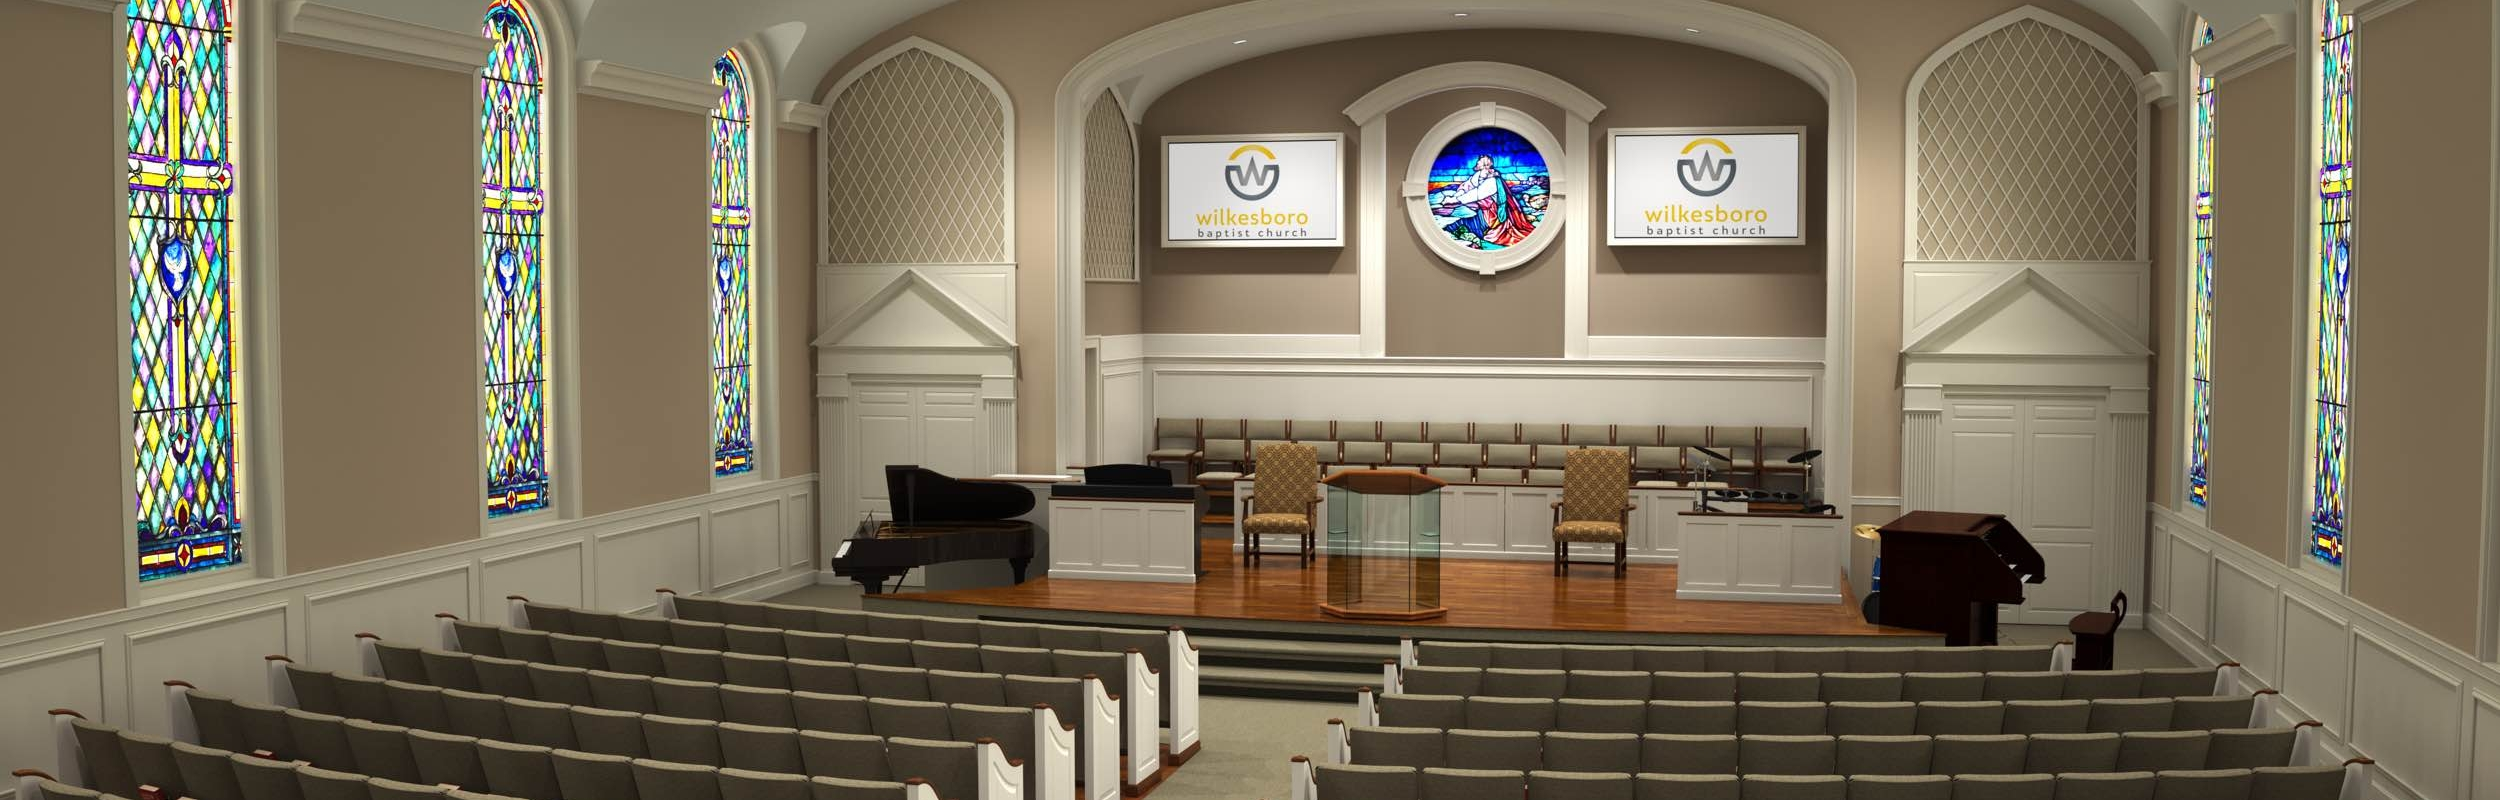 Pentecostal Church Altar Designs Images Galleries With A Bite